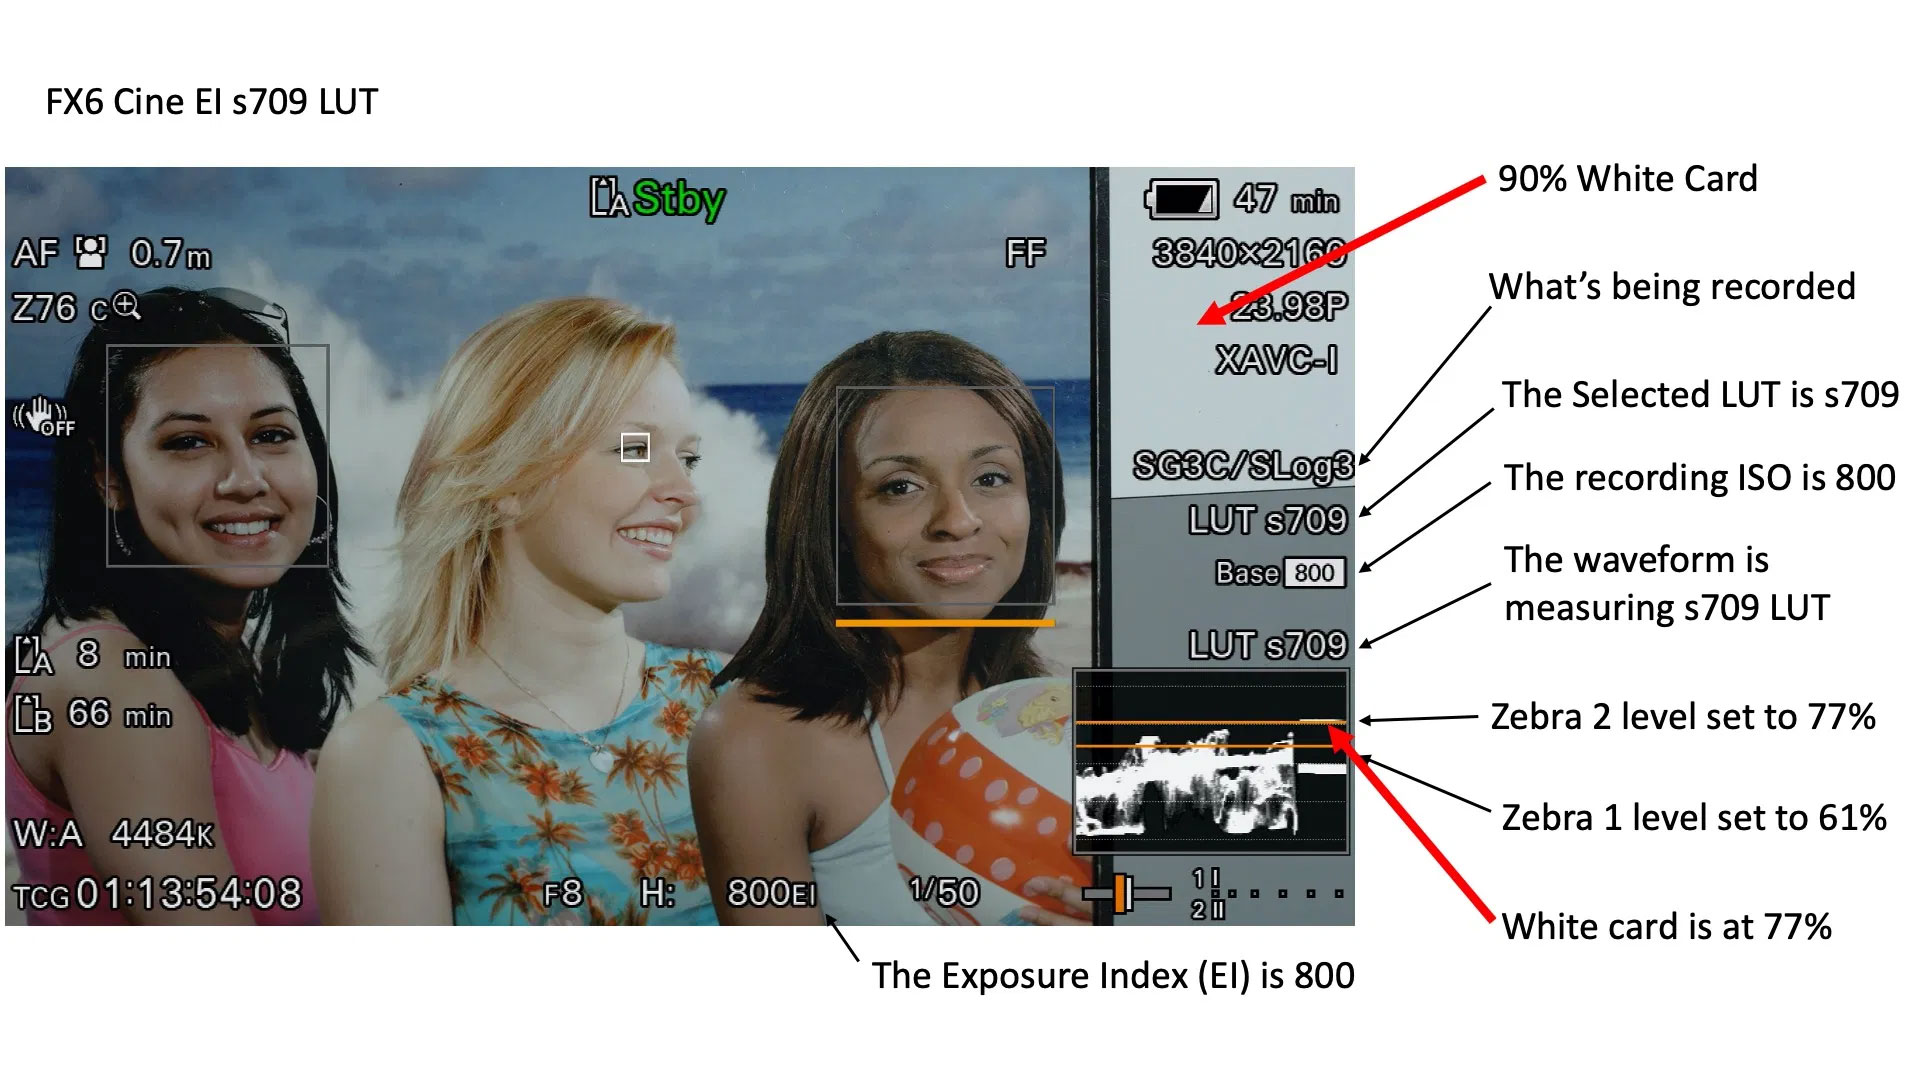 The CineEI mode of the Sony FX6 explained